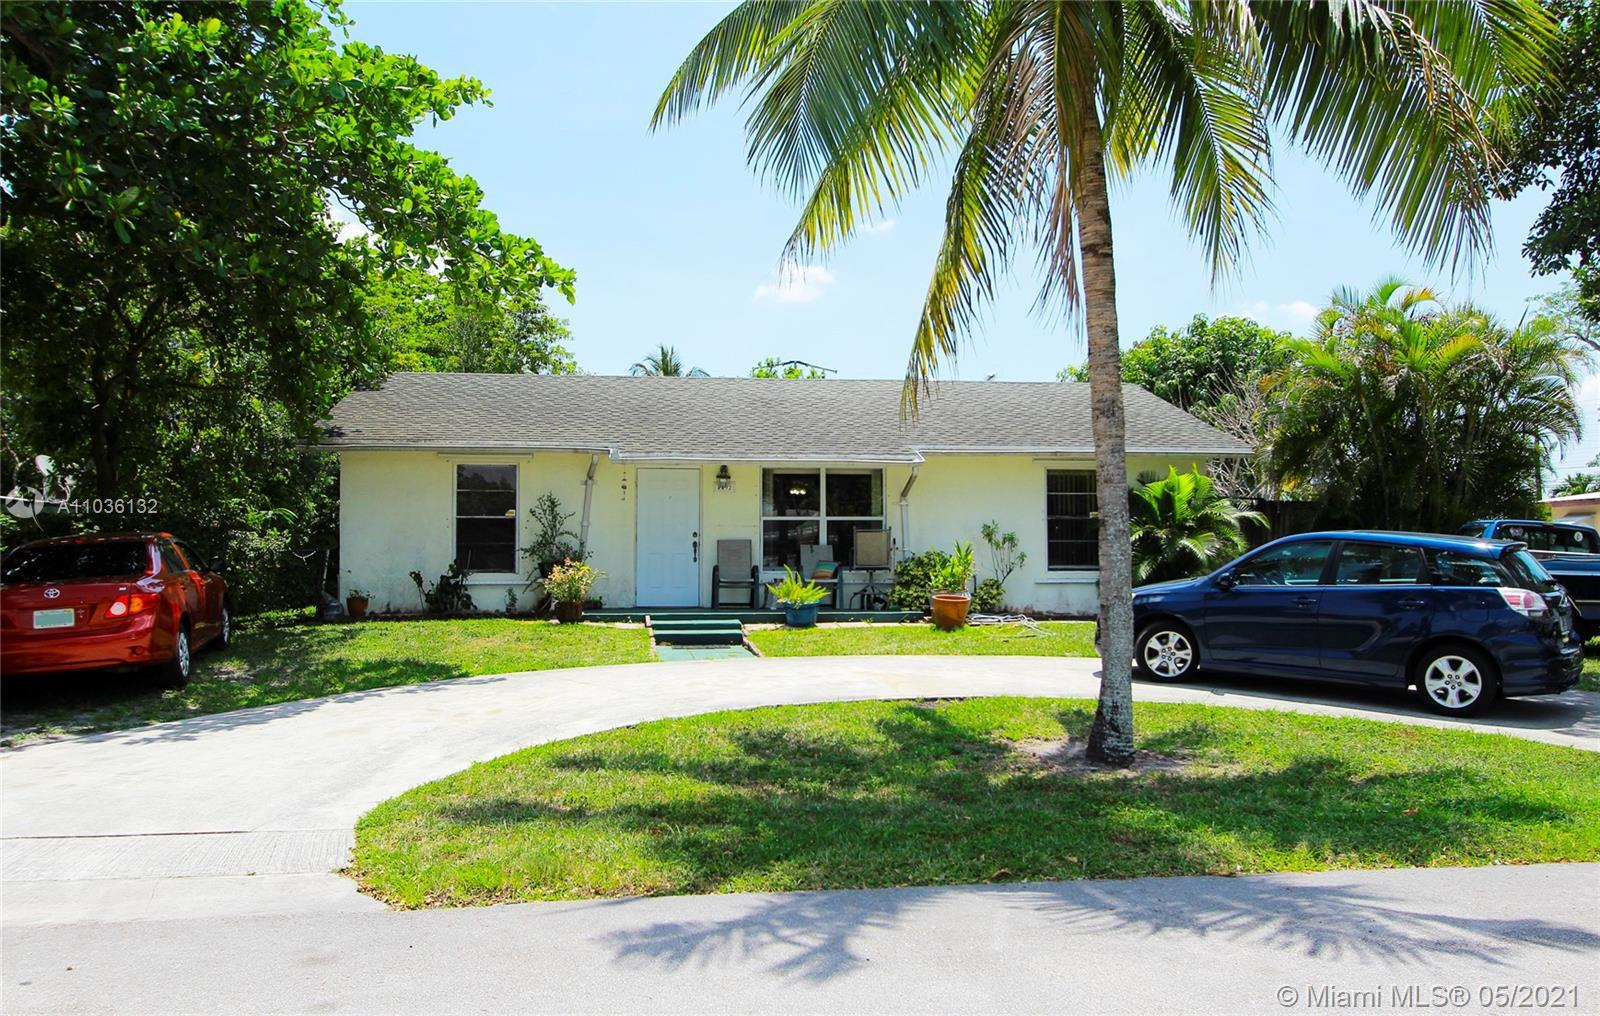 Motivated seller. Classic-style Gable home in West Palm Beach, amazing opportunity to own a starter